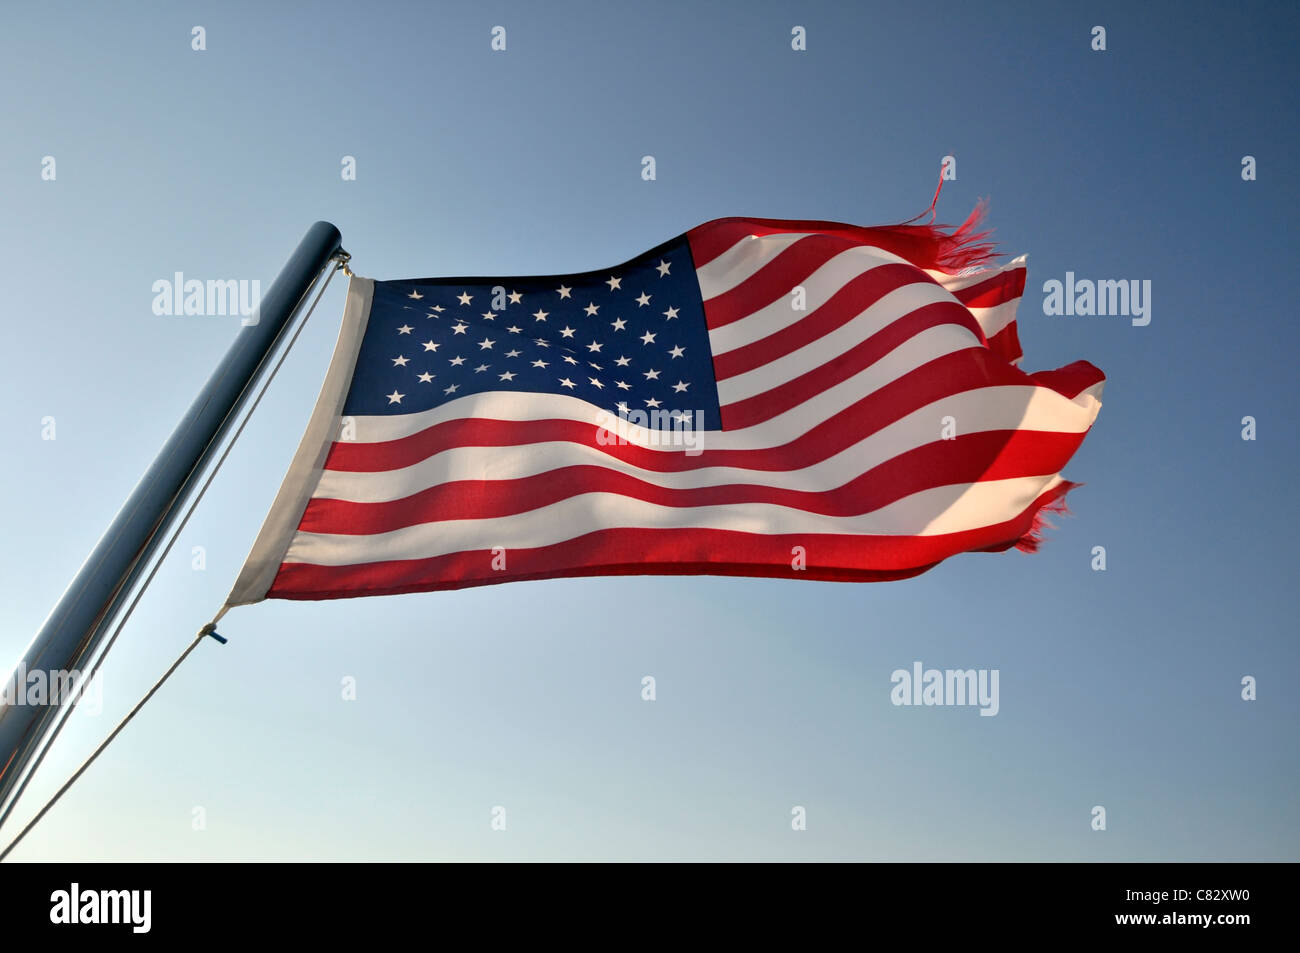 ragged old American flag - Stock Image